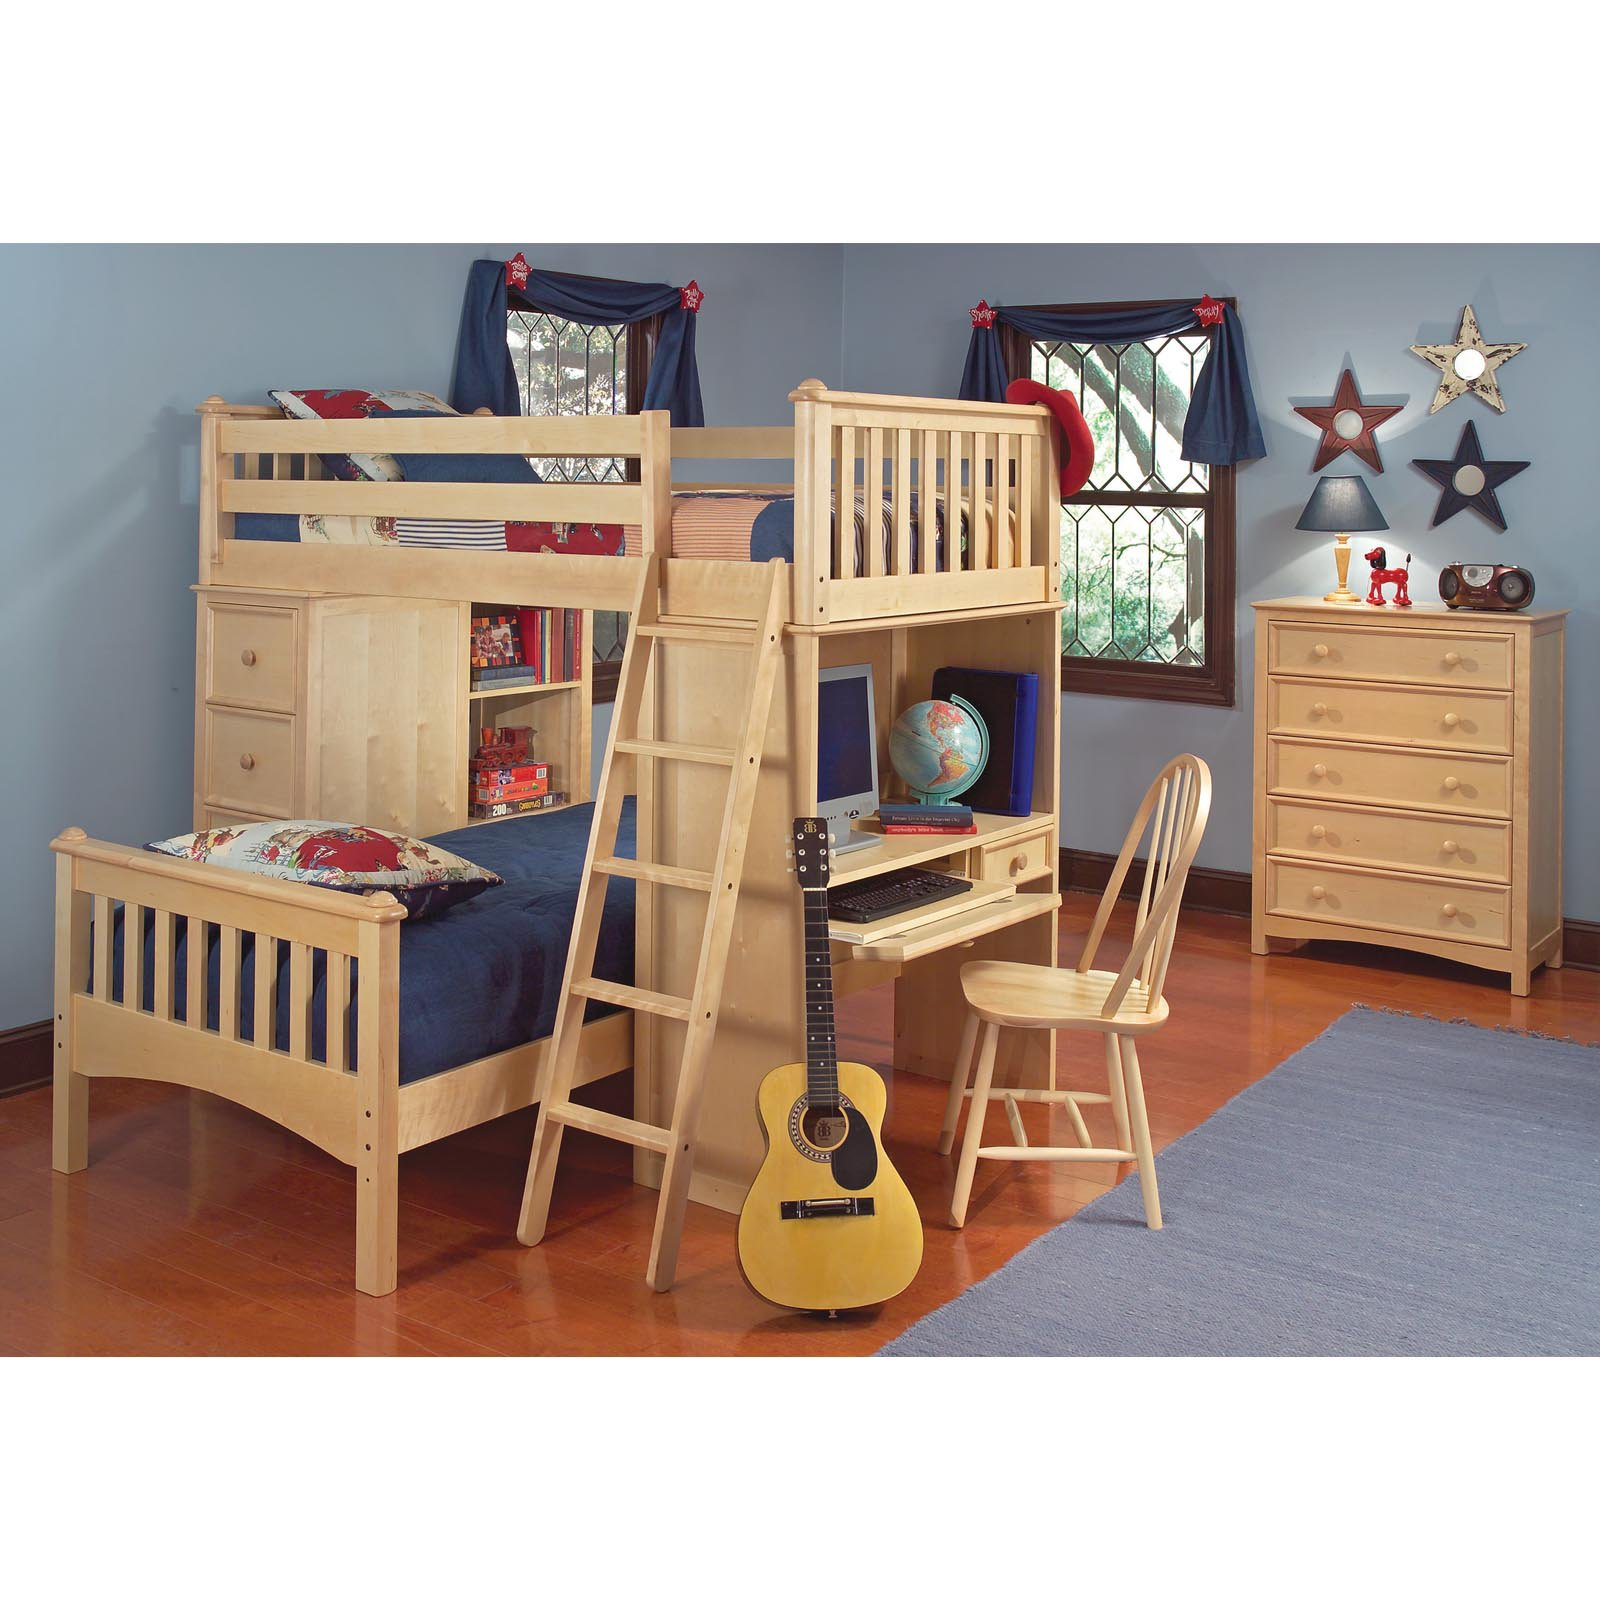 Cooley SSS Twin Loft Bed 2